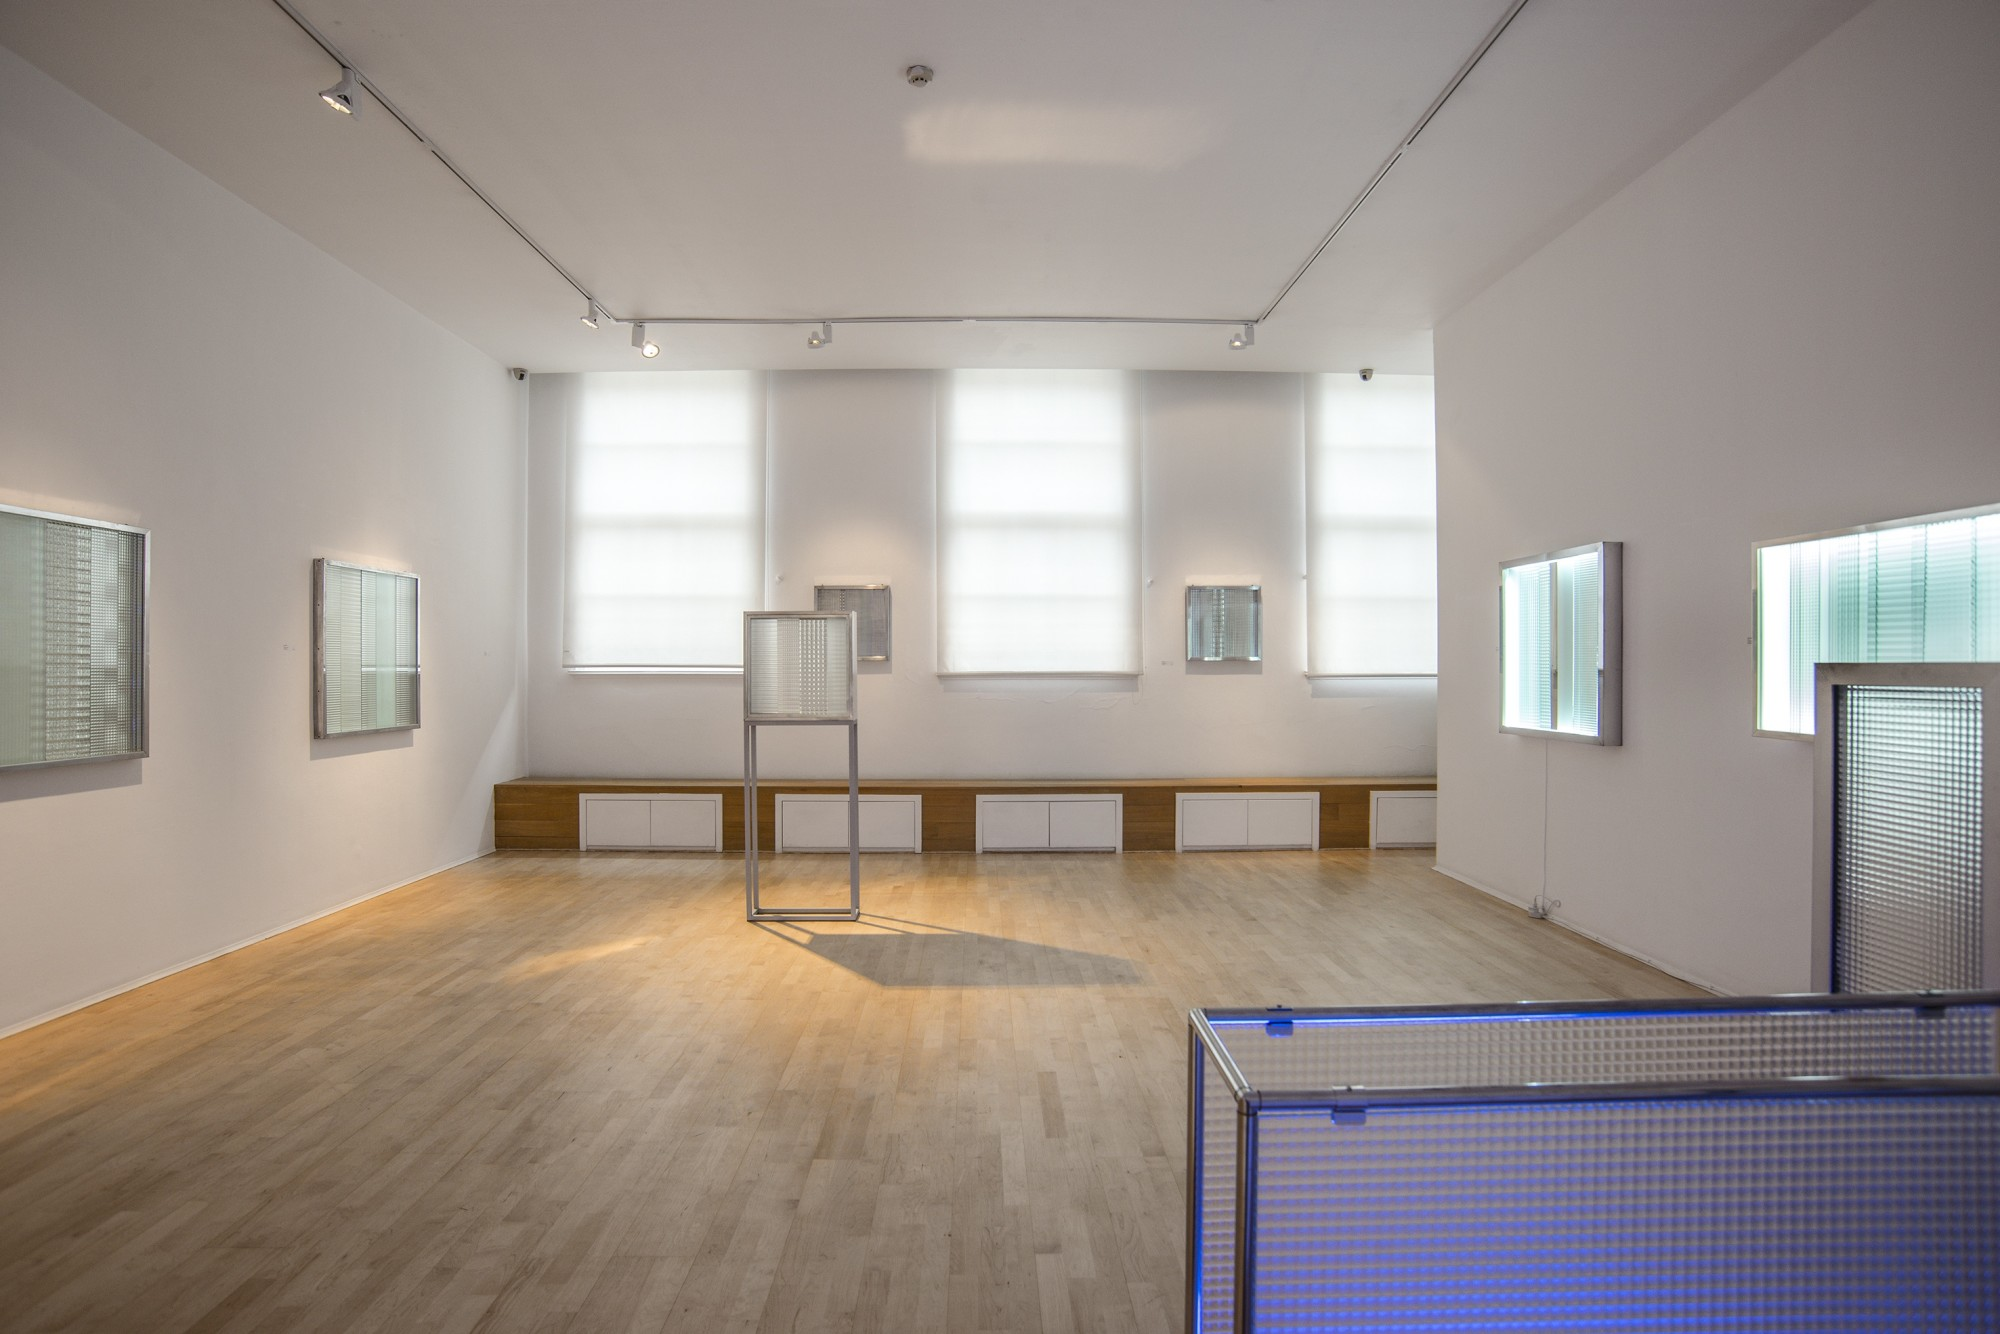 """<span class=""""link fancybox-details-link""""><a href=""""/exhibitions/58/works/image_standalone65/"""">View Detail Page</a></span><p>NANDA VIGO   CHRONOTOPS   10 SEP - 24 OCT 2014   Installation View</p>"""